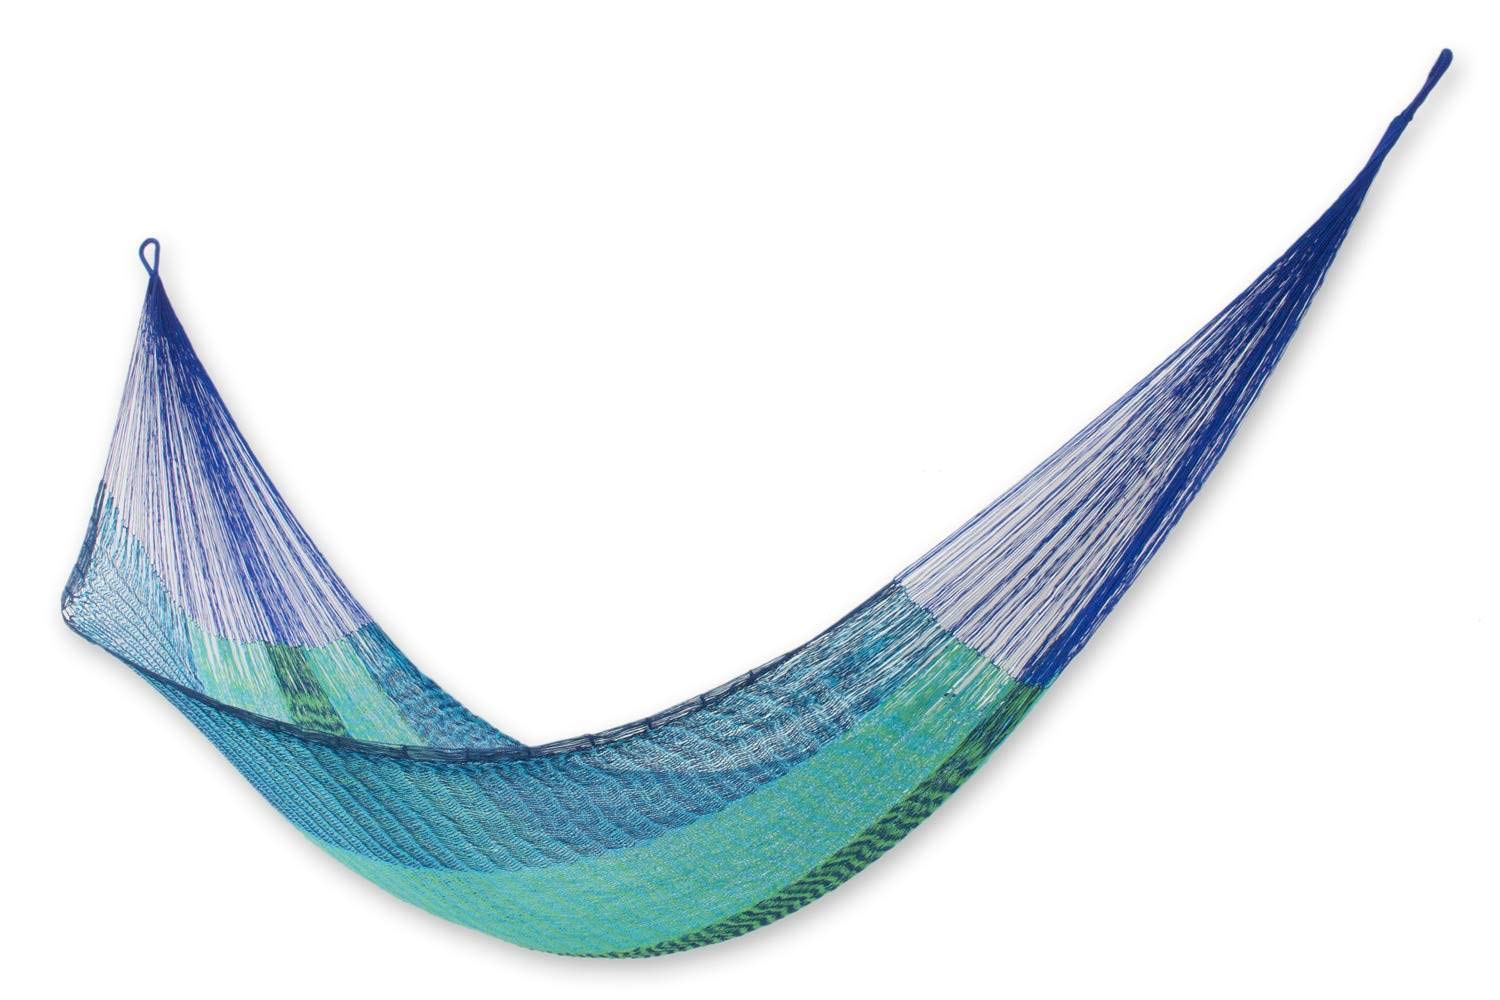 NOVICA Blue and Green Cotton Nylon Rope Mayan Hammock 'Cool Maya' (Double) - Bed size: 78 in. L x 67 in. W; Total length: 158 in. L Authentic: an original NOVICA fair trade product in association with National Geographic. Certified: comes with an official NOVICA Story Card certifying quality & authenticity. - patio-furniture, patio, hammocks - 61a5wLN8NFL -